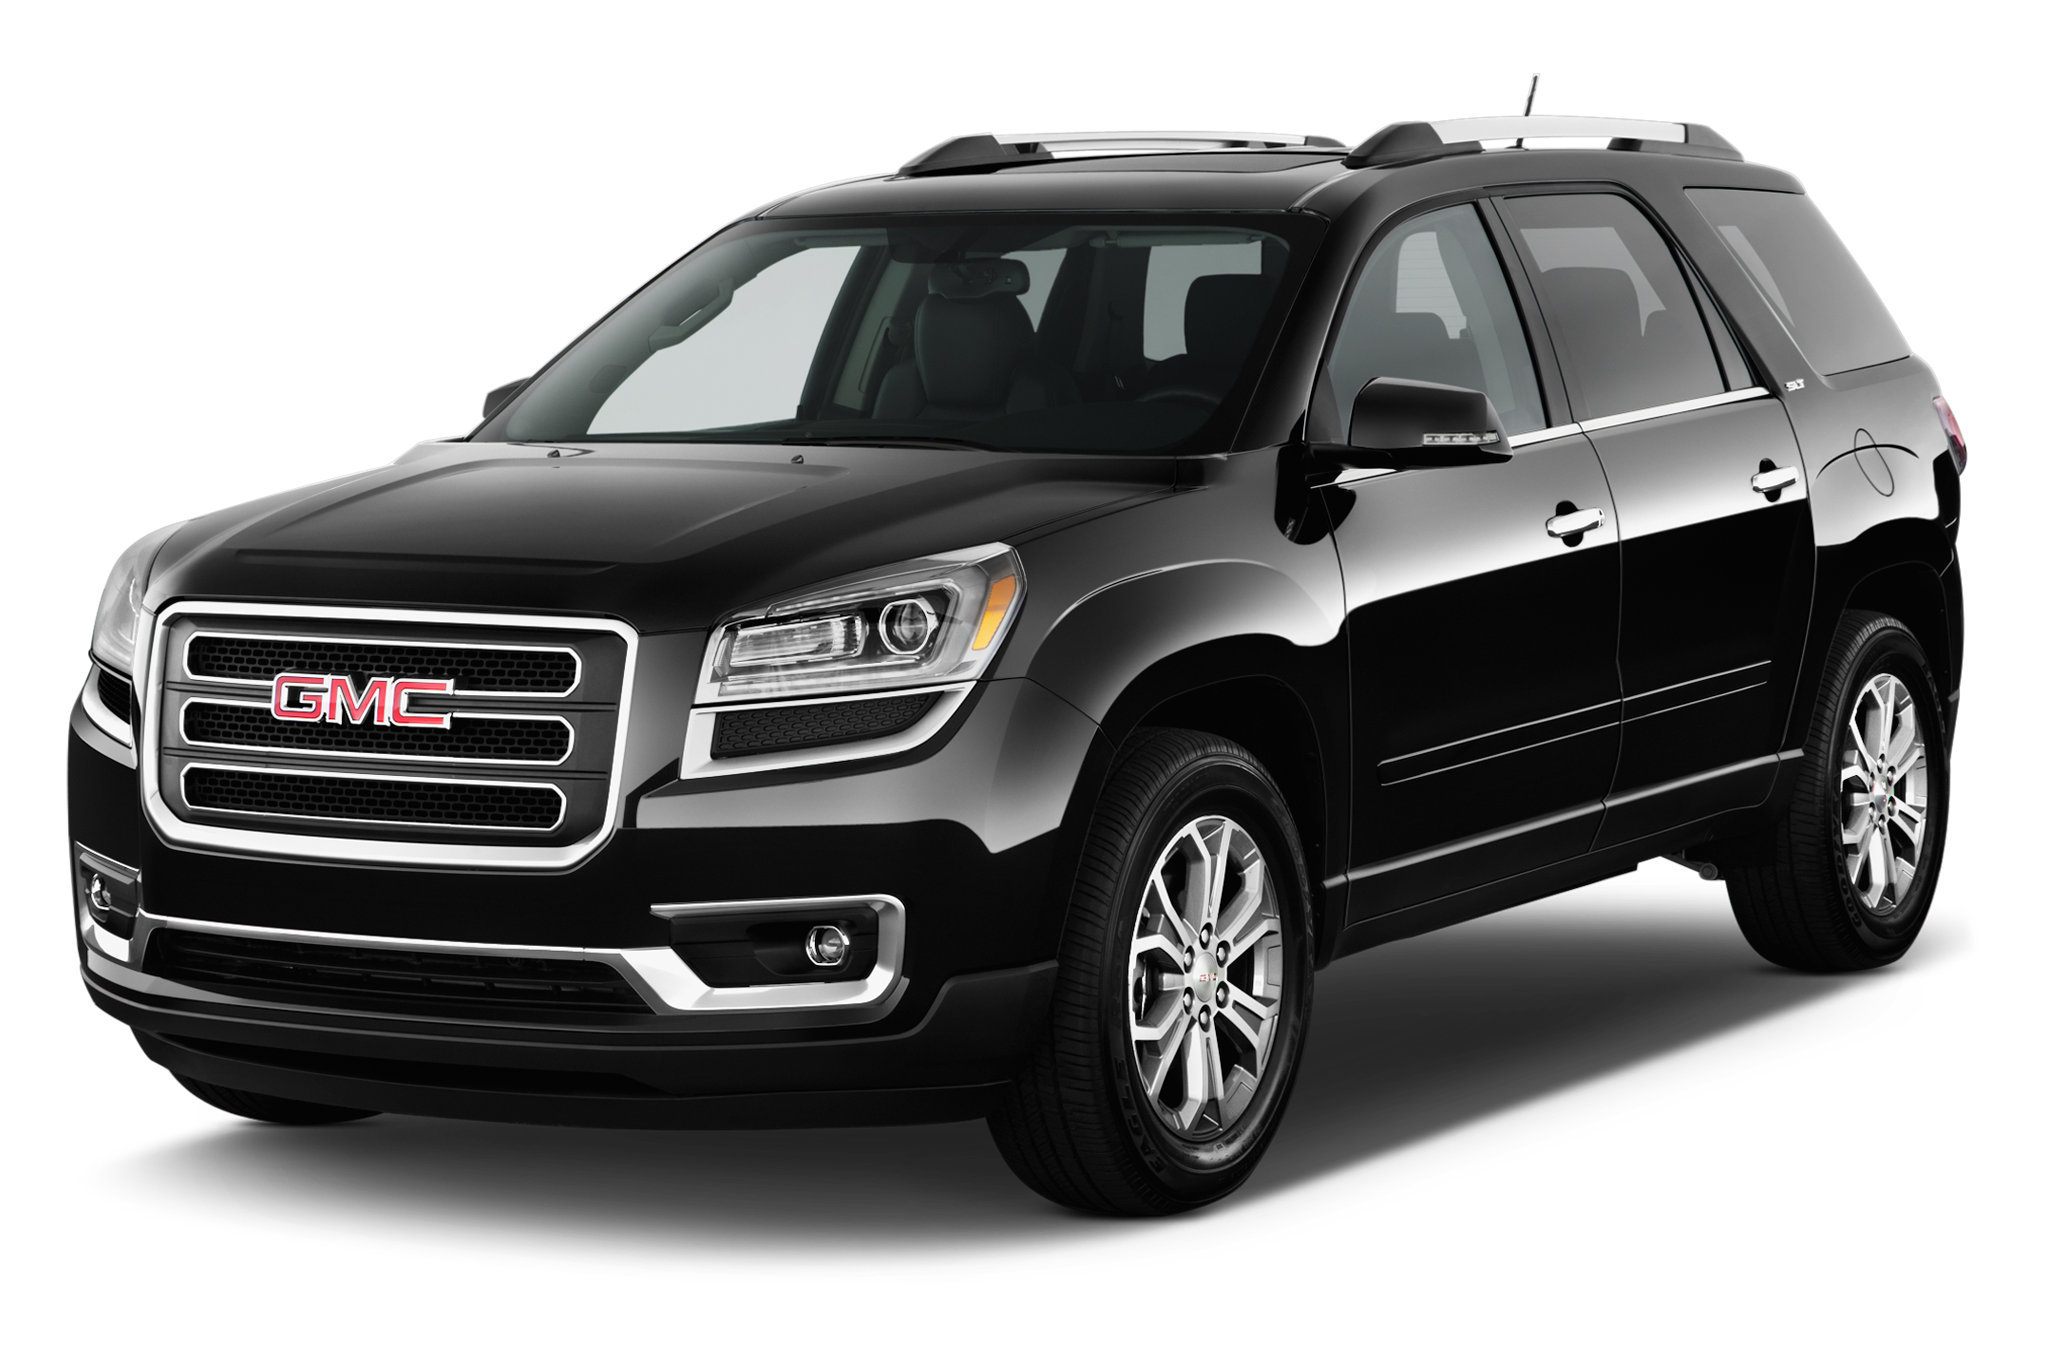 2016 gmc acadia fwd sle 2 overview msn autos. Black Bedroom Furniture Sets. Home Design Ideas